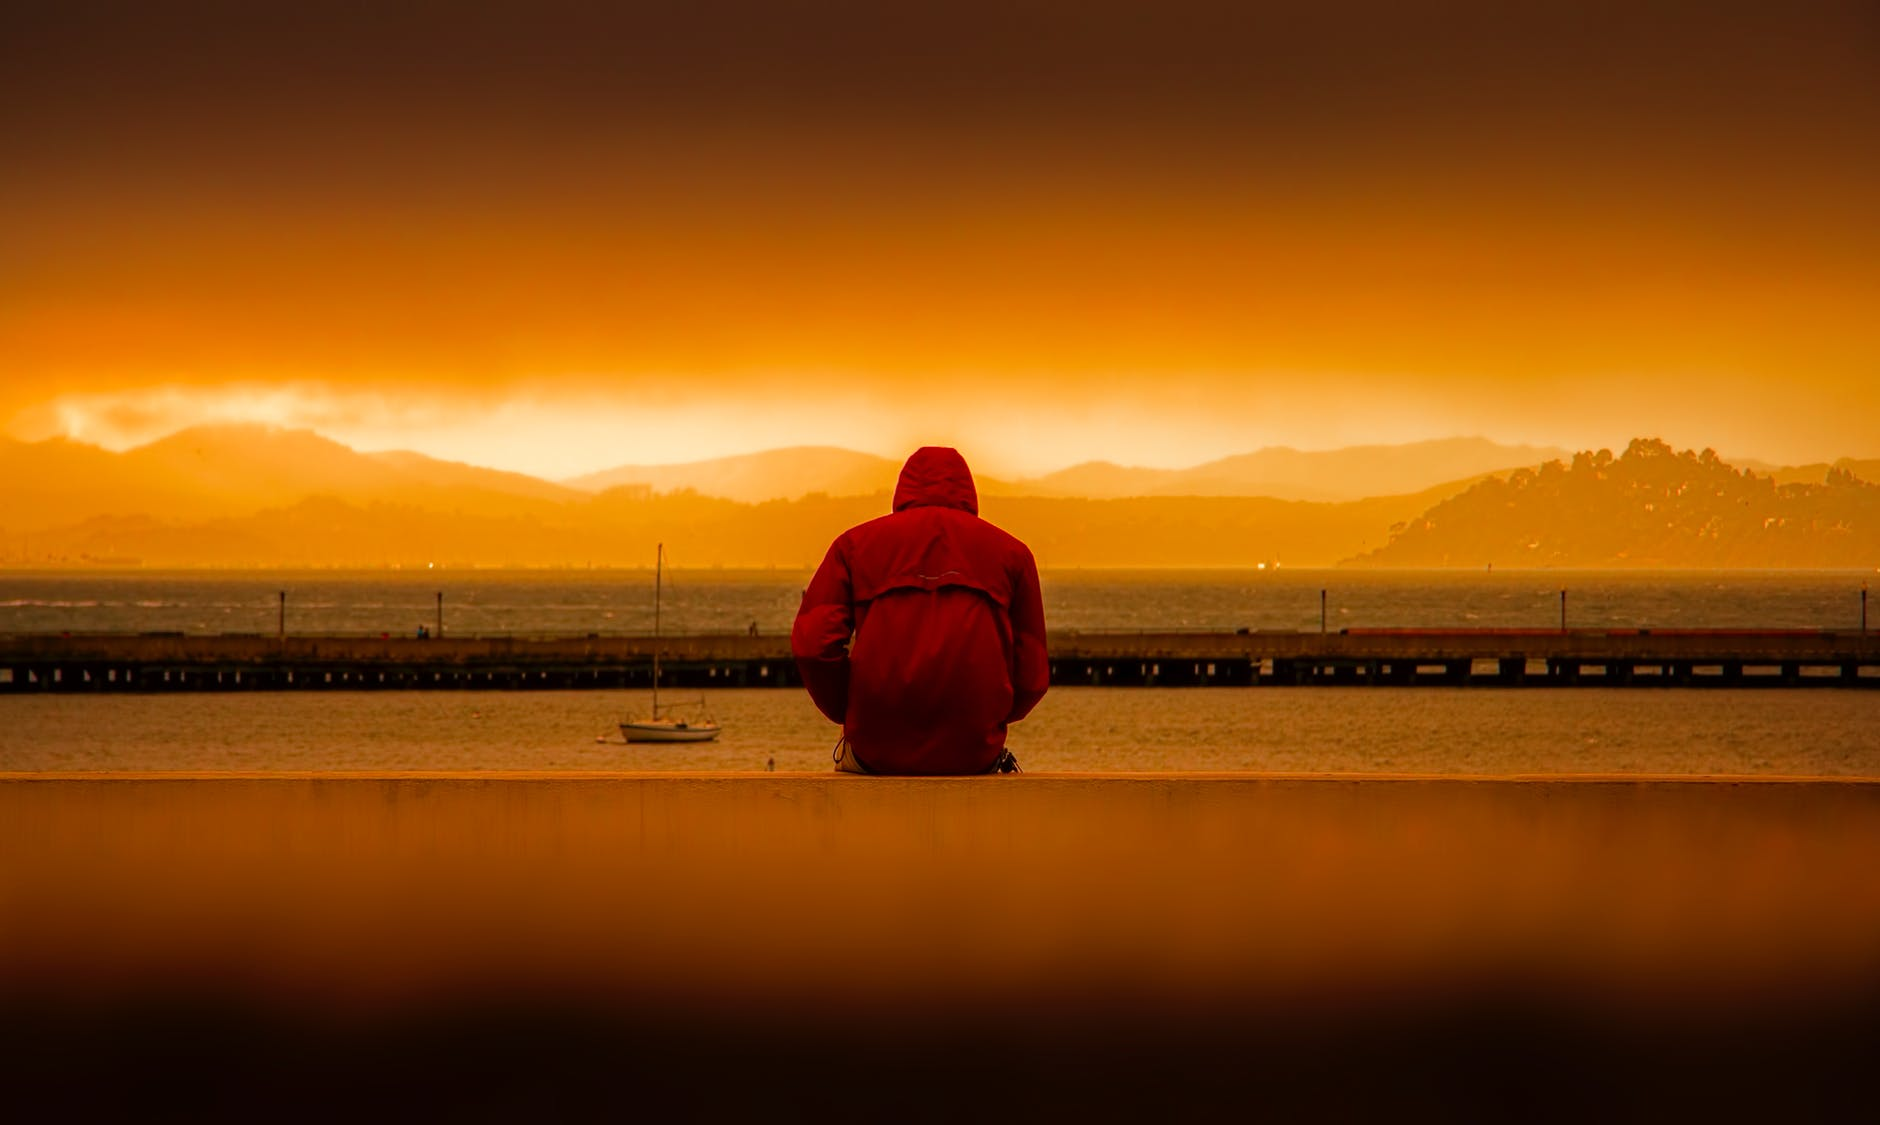 rear view of person in hooded jacket overlooking the sea at sunrise illustrating suicide and self harm with addiction